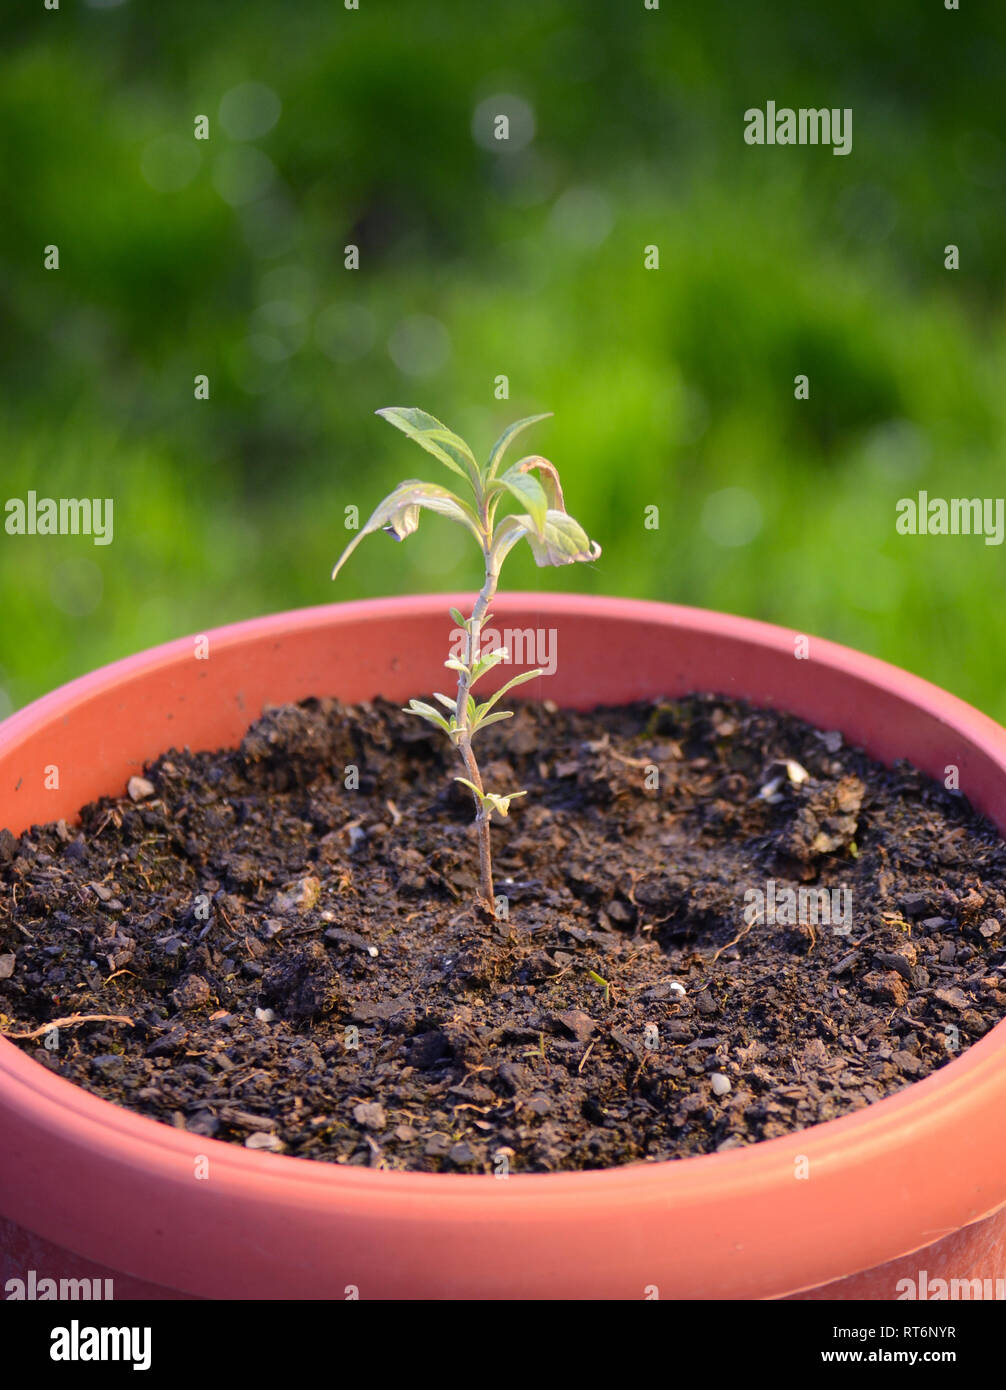 Plant in a pot full of soil - Stock Image